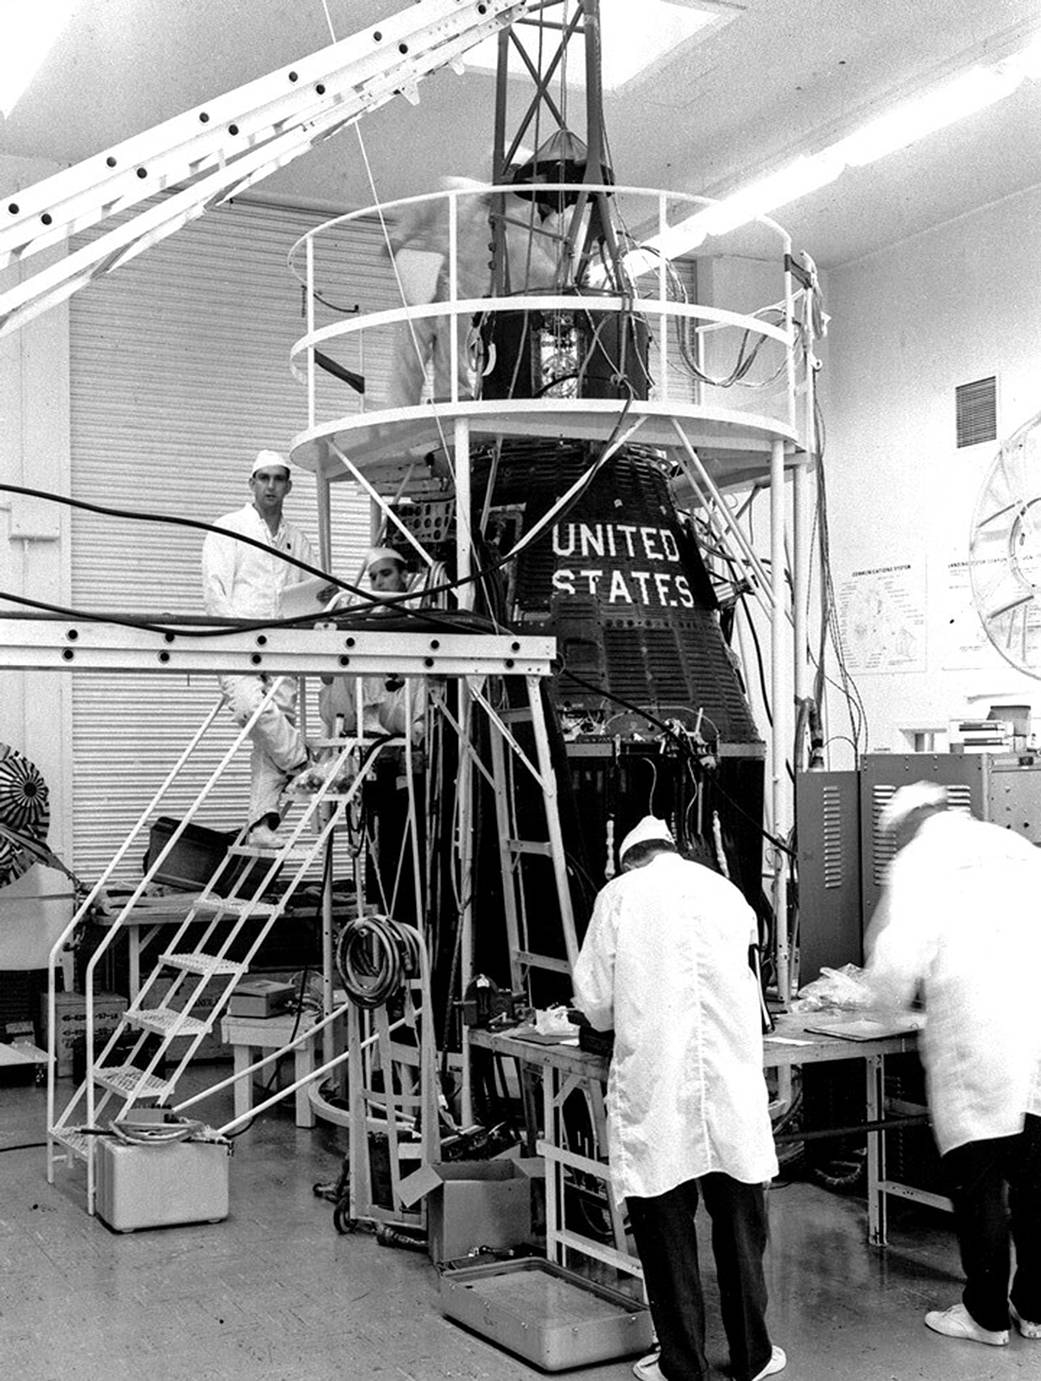 The Mercury Capsule for the Mercury Atlas 7 mission of NASA astronaut Scott Carpenter undergoes testing in the White Room of Hangar S on April 11, 1962. Credit: NASA.